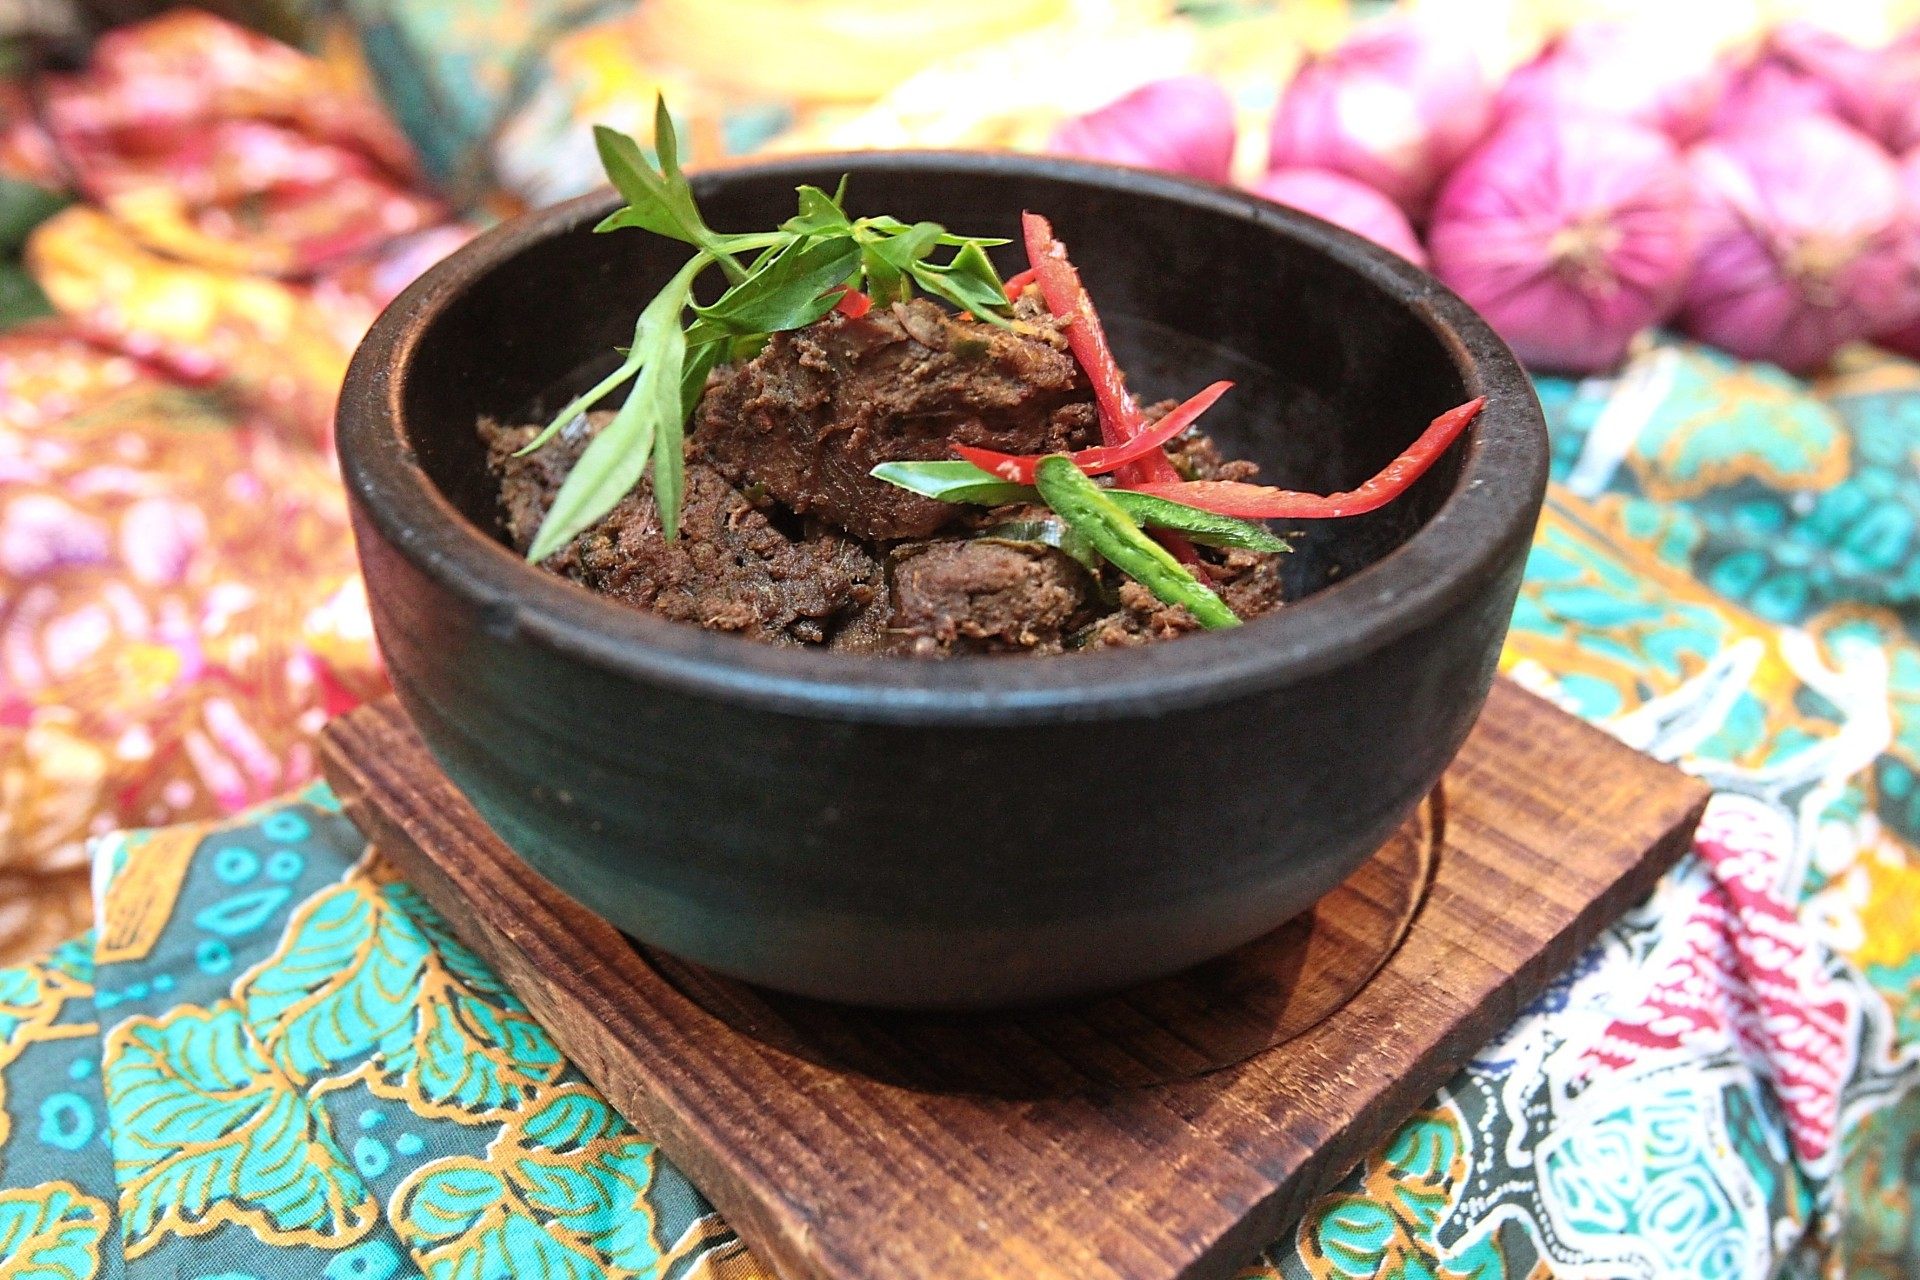 The rendang tok is delightfully nutty and rich.